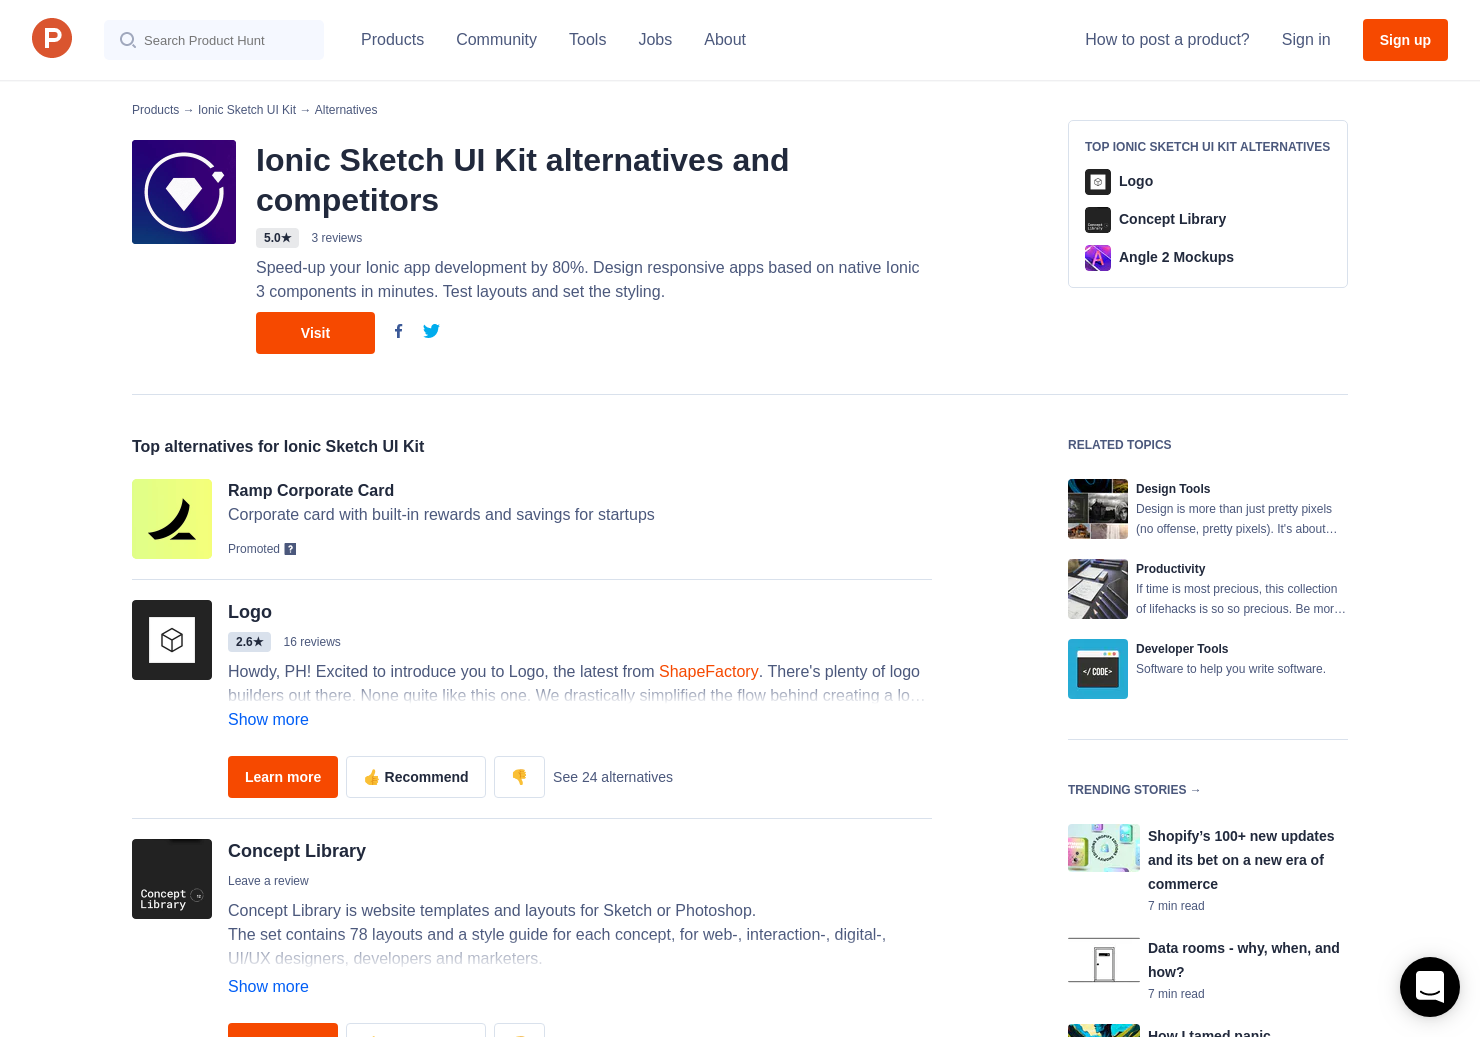 6 Alternatives to Ionic Sketch UI Kit | Product Hunt